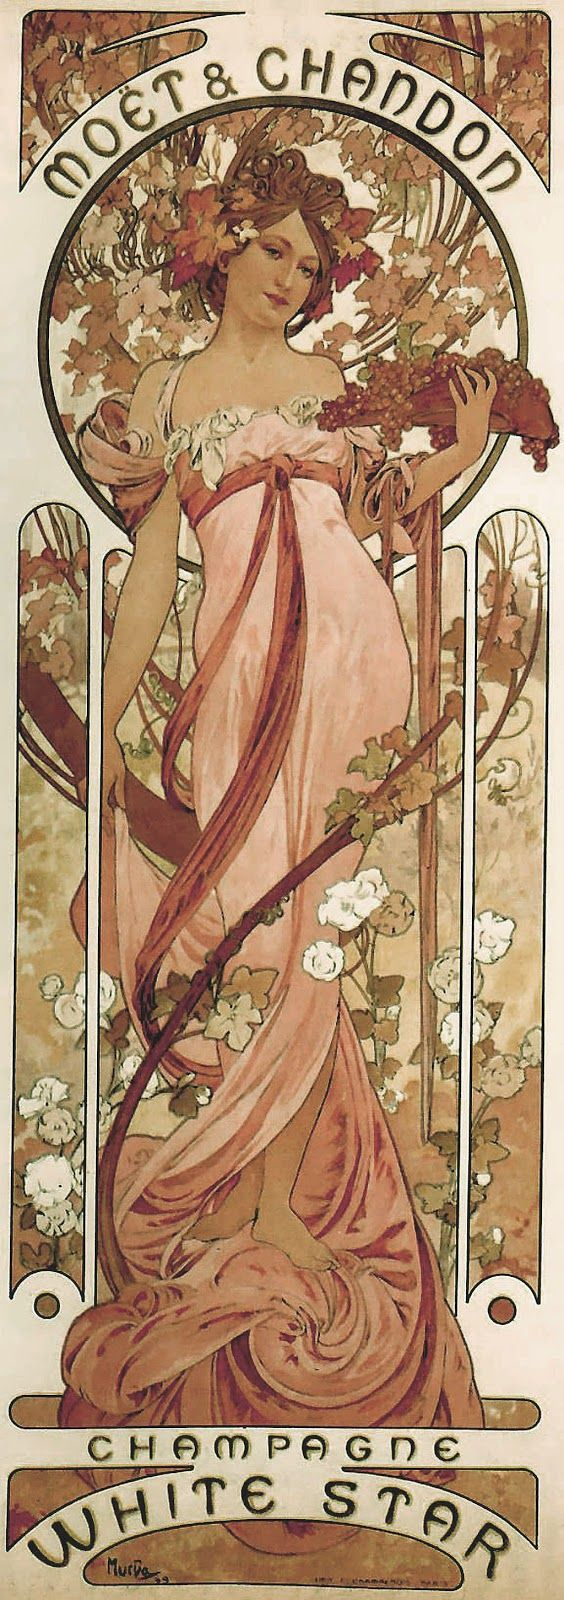 ART & ARTISTS: Alphonse Mucha - part 4